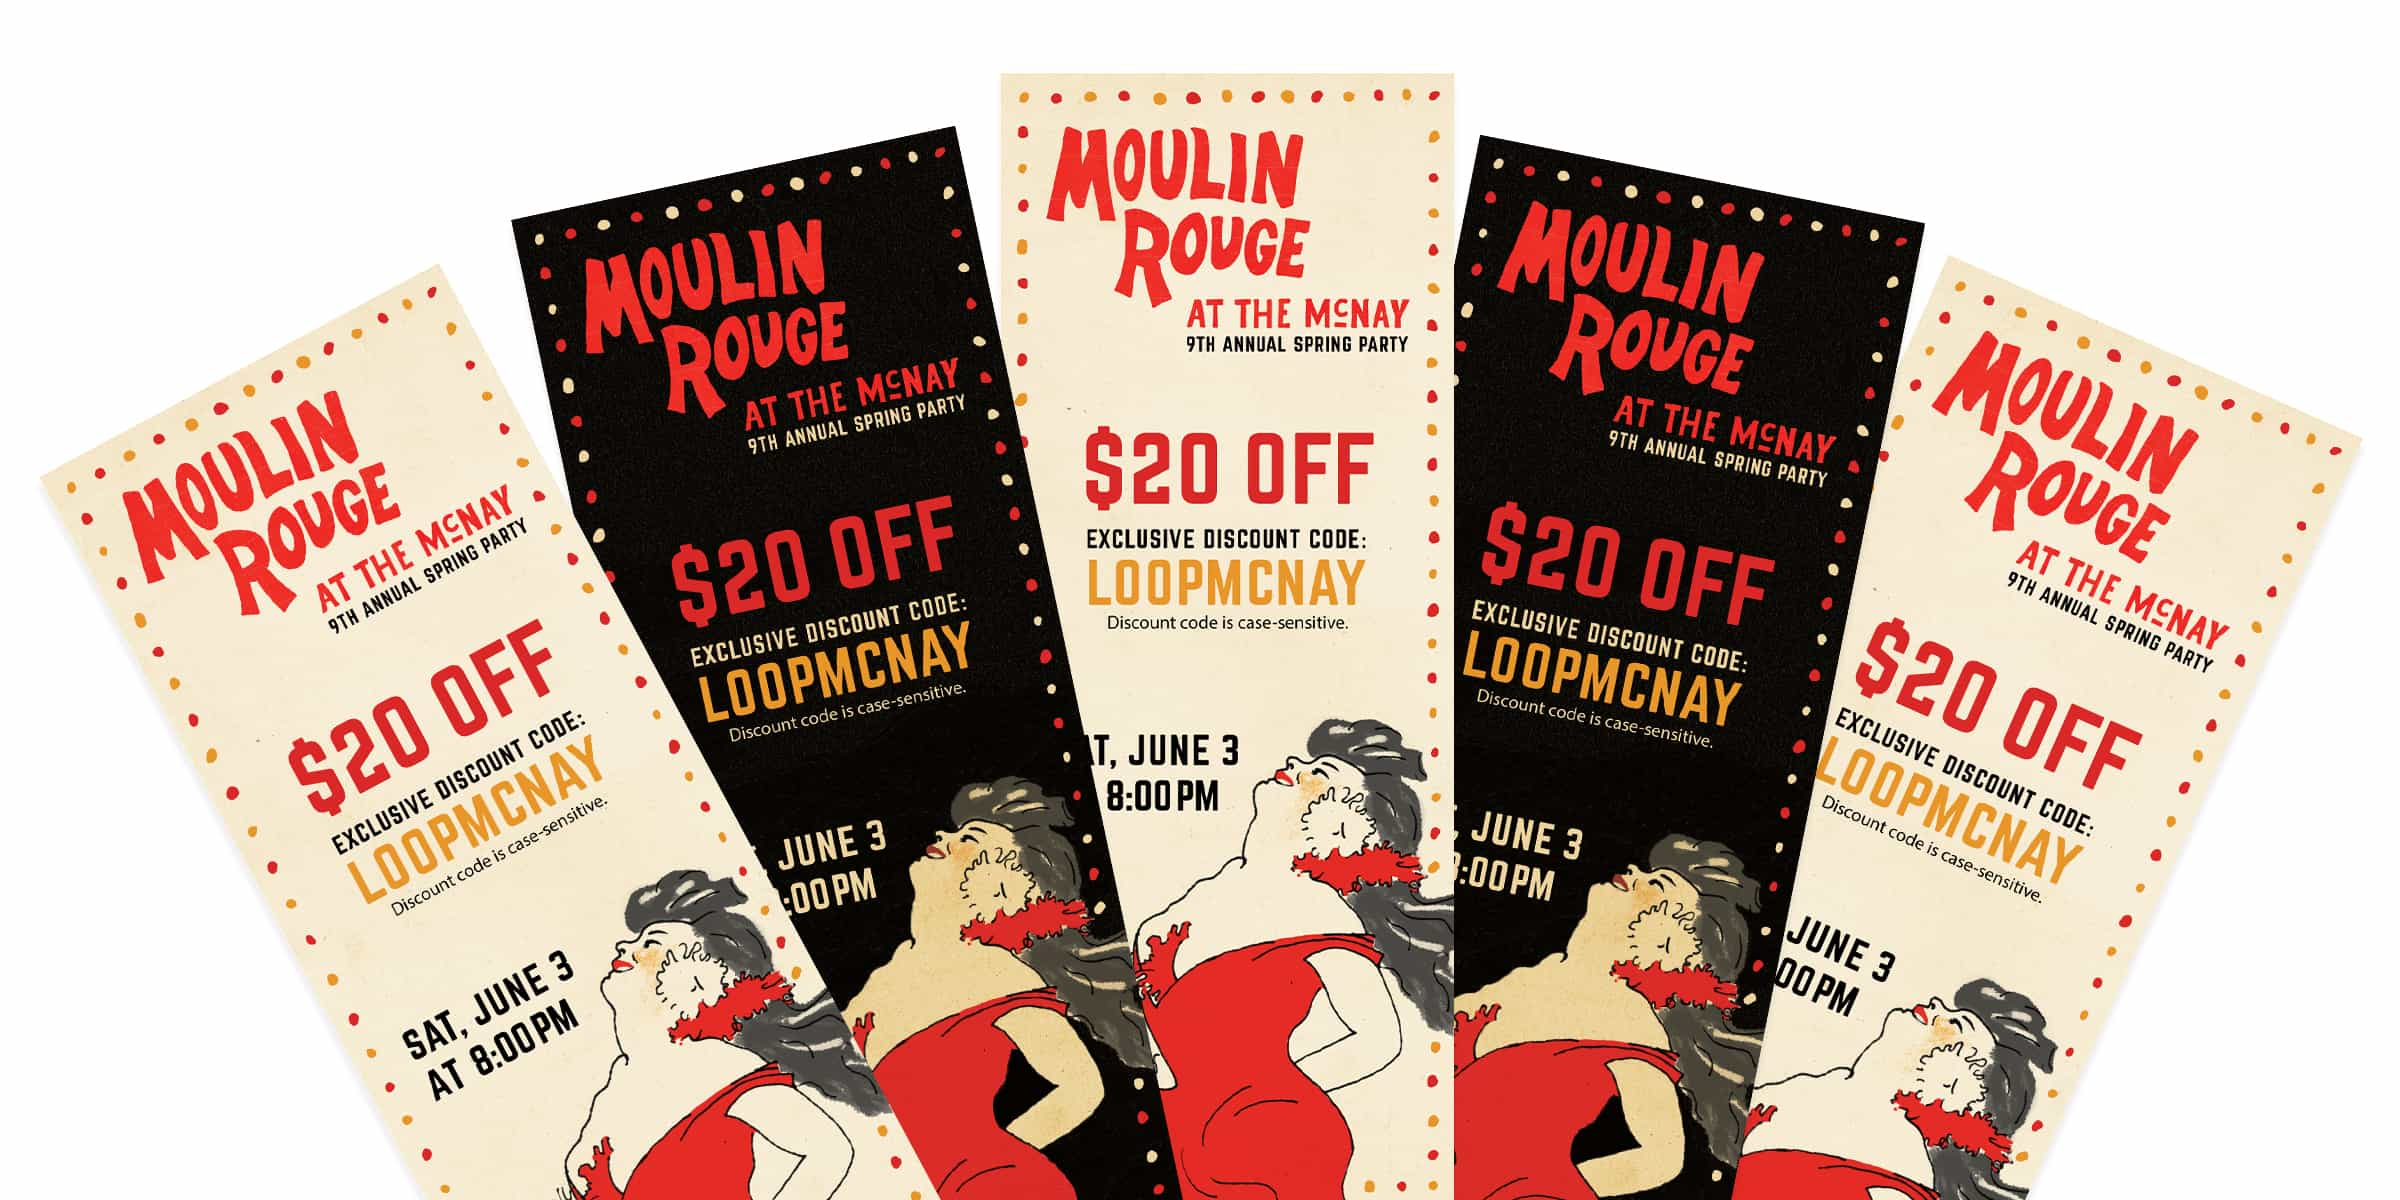 Moulin Rouge coupons